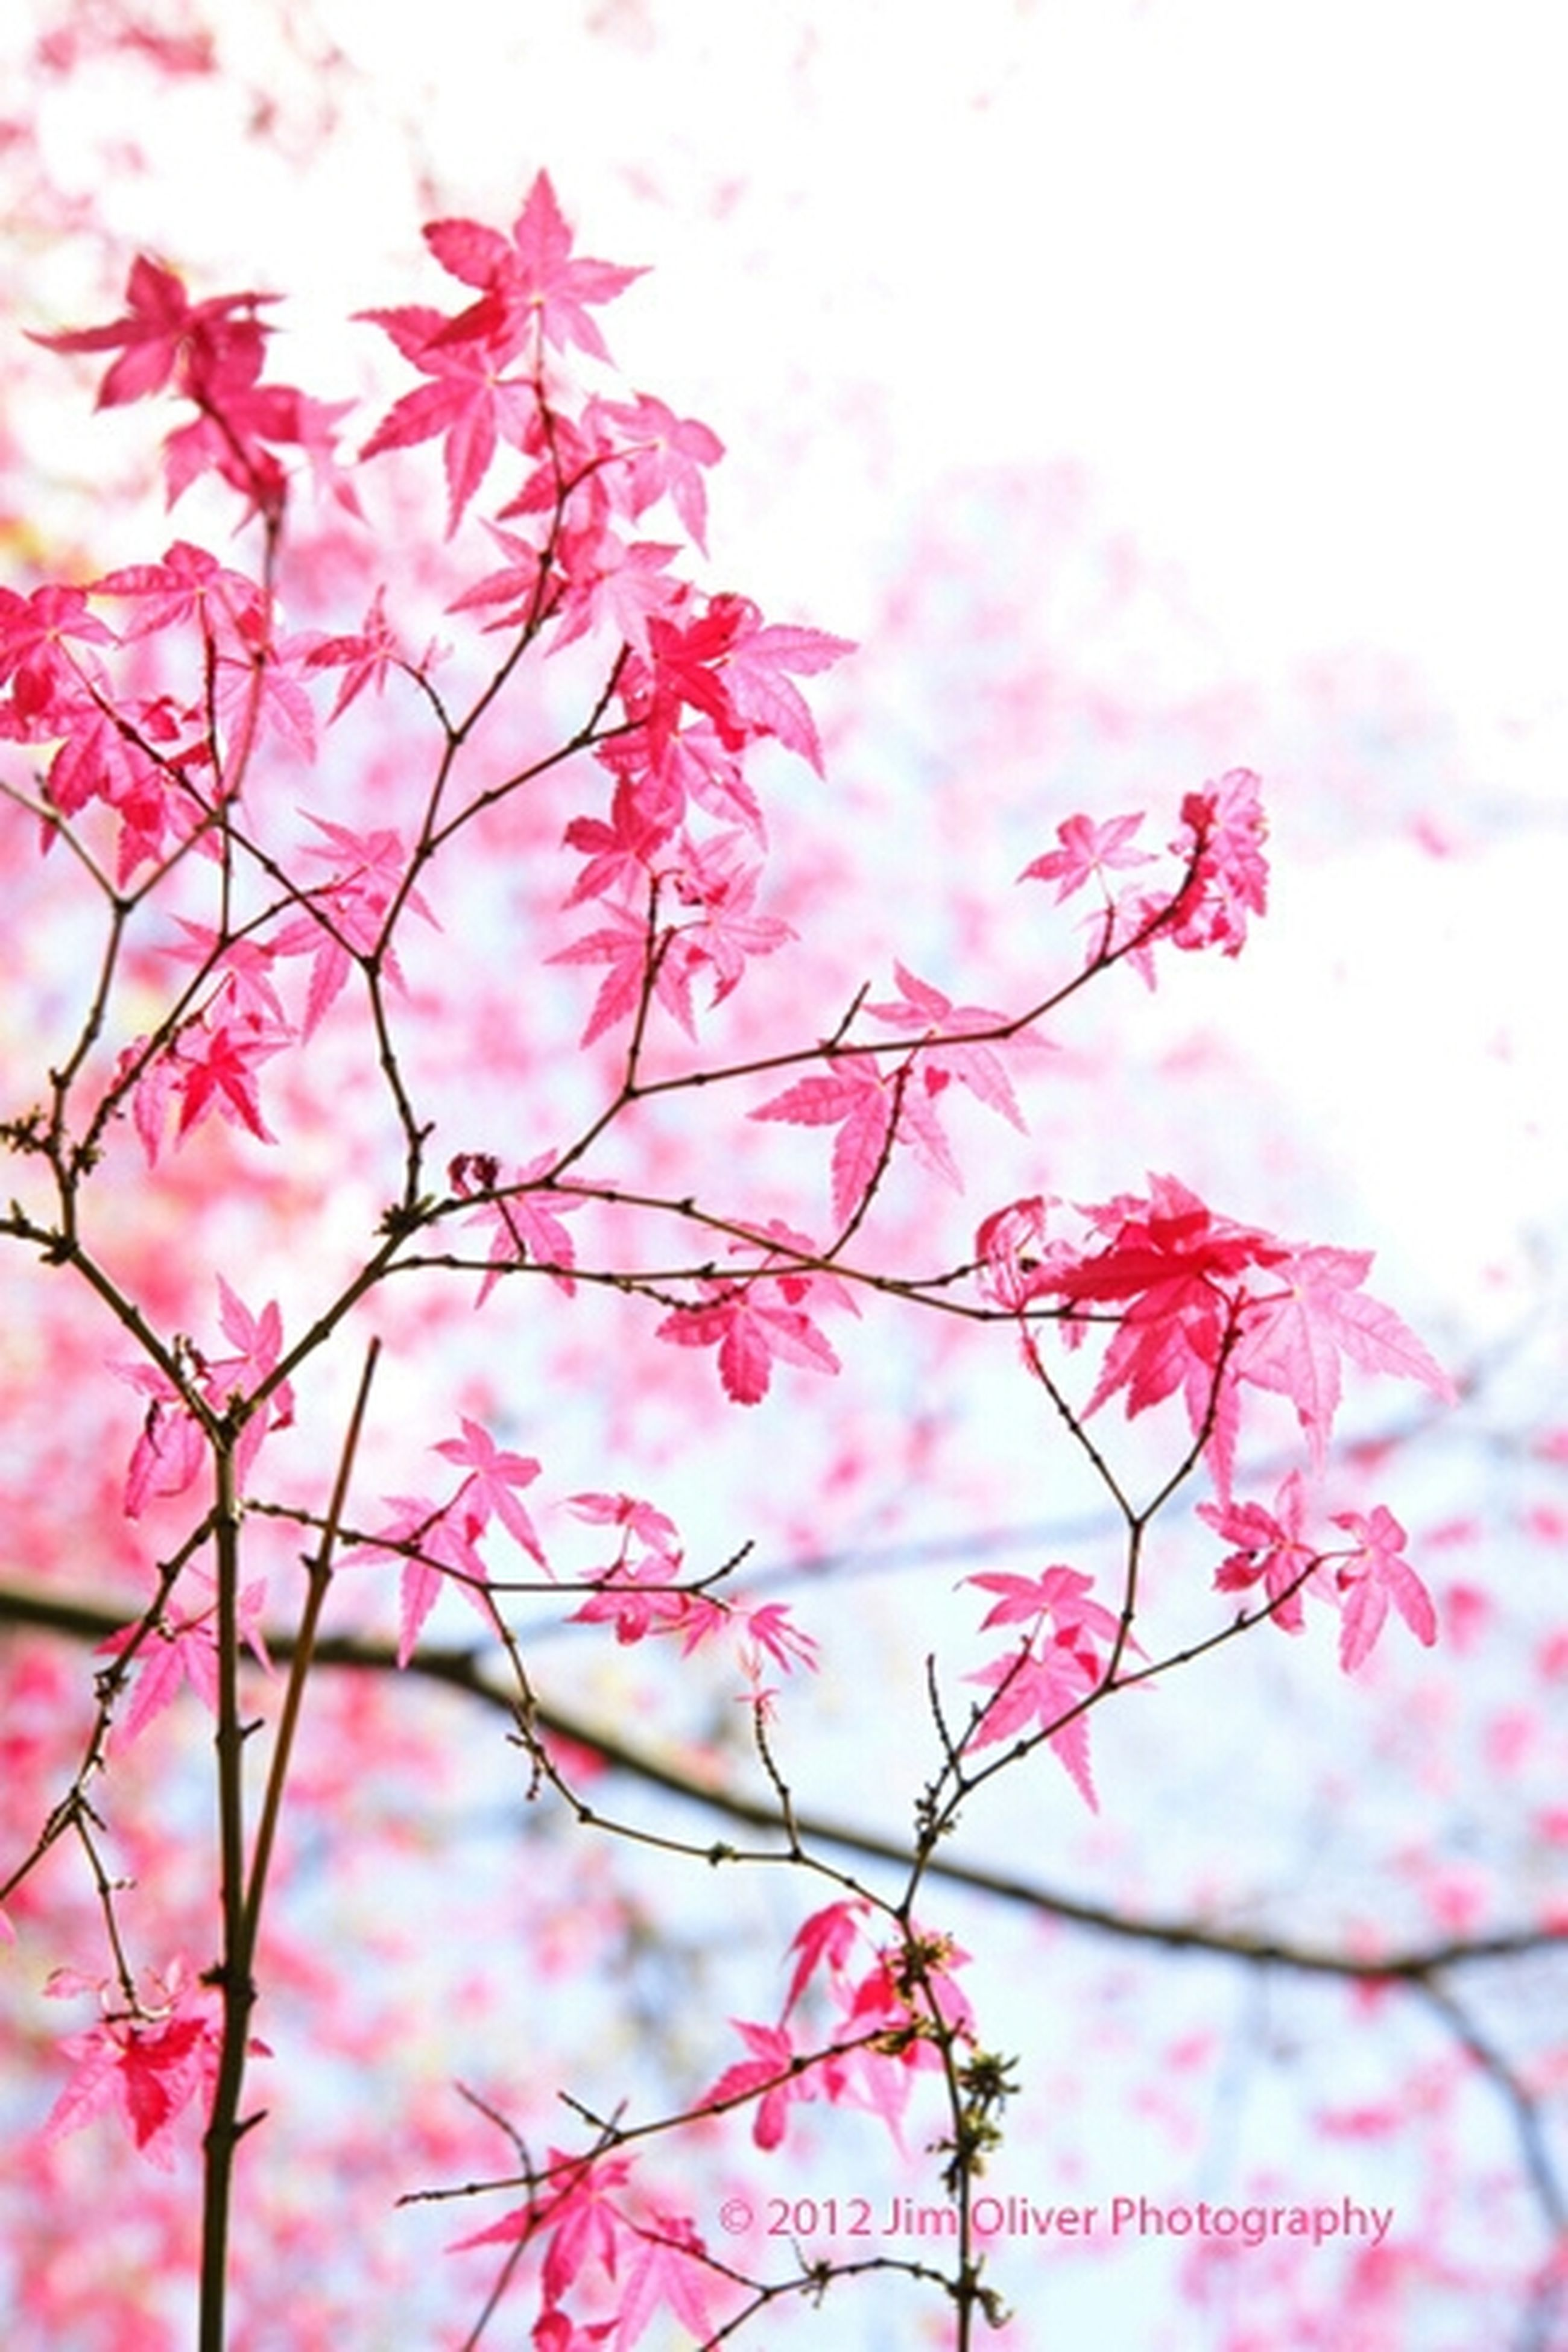 flower, pink color, freshness, growth, beauty in nature, fragility, branch, nature, focus on foreground, sky, close-up, tree, blossom, pink, season, twig, low angle view, plant, stem, petal